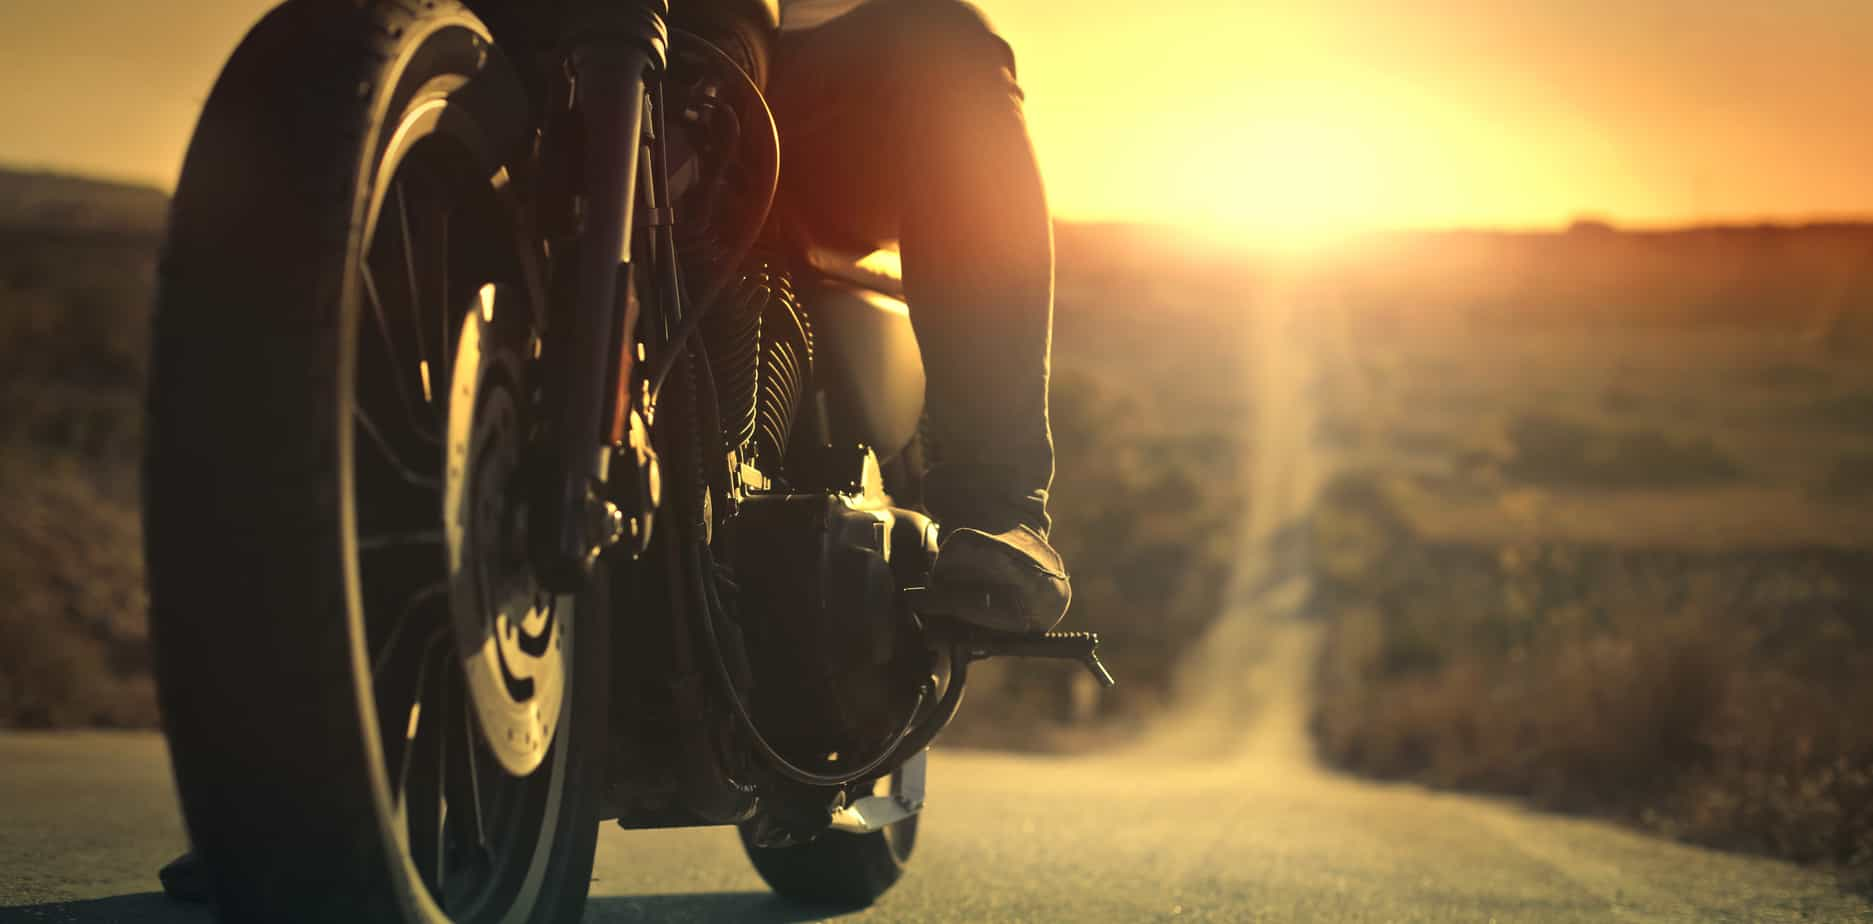 Man on motorcycle preparing to ride into the sunset